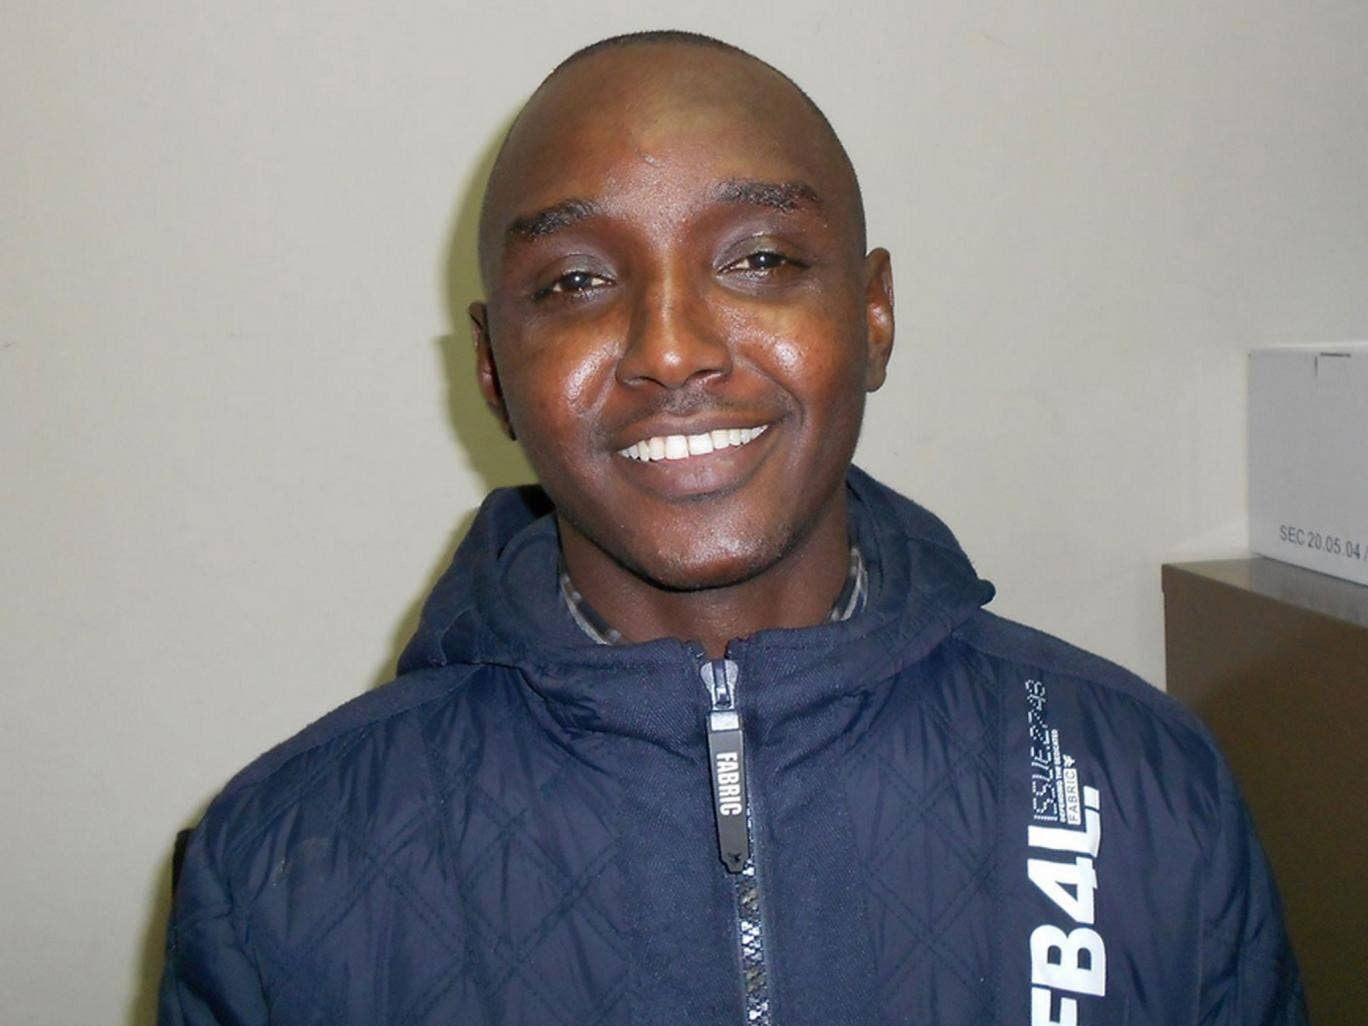 Peace Studies student Anowar Tagabo, 25, who was murdered on the streets of Sheffield